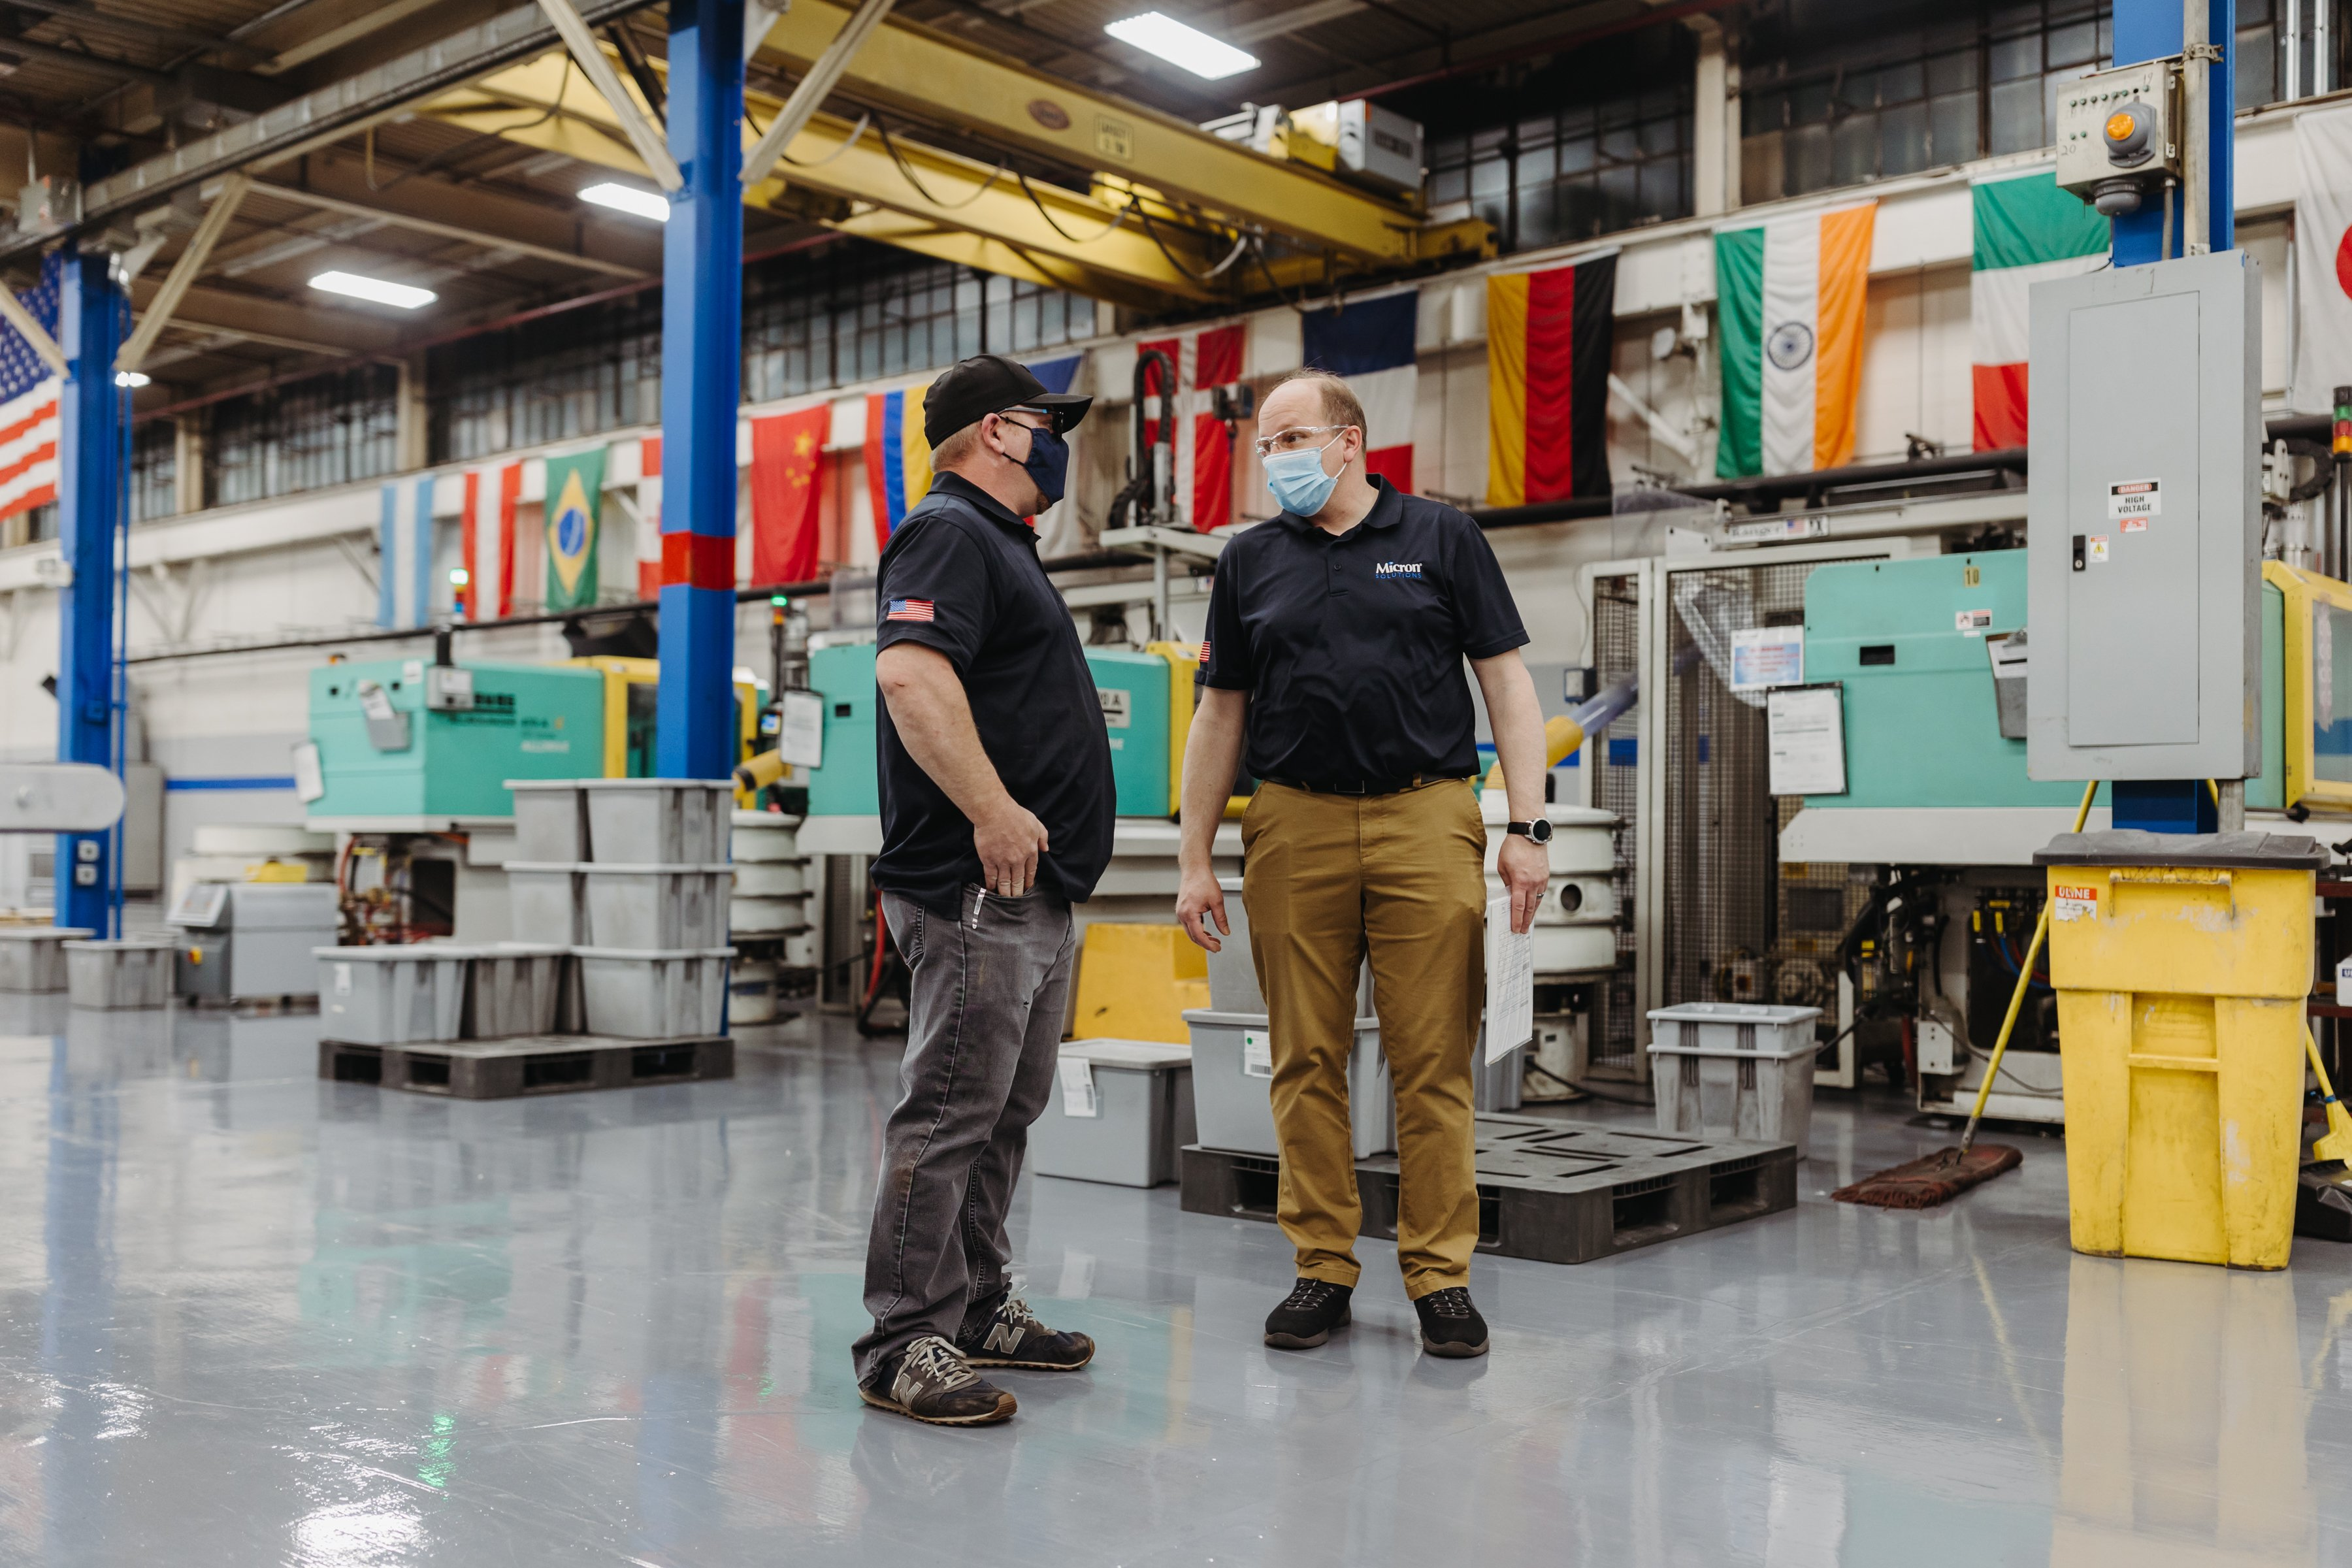 Two men are talking to each other with injection molding machines behind them